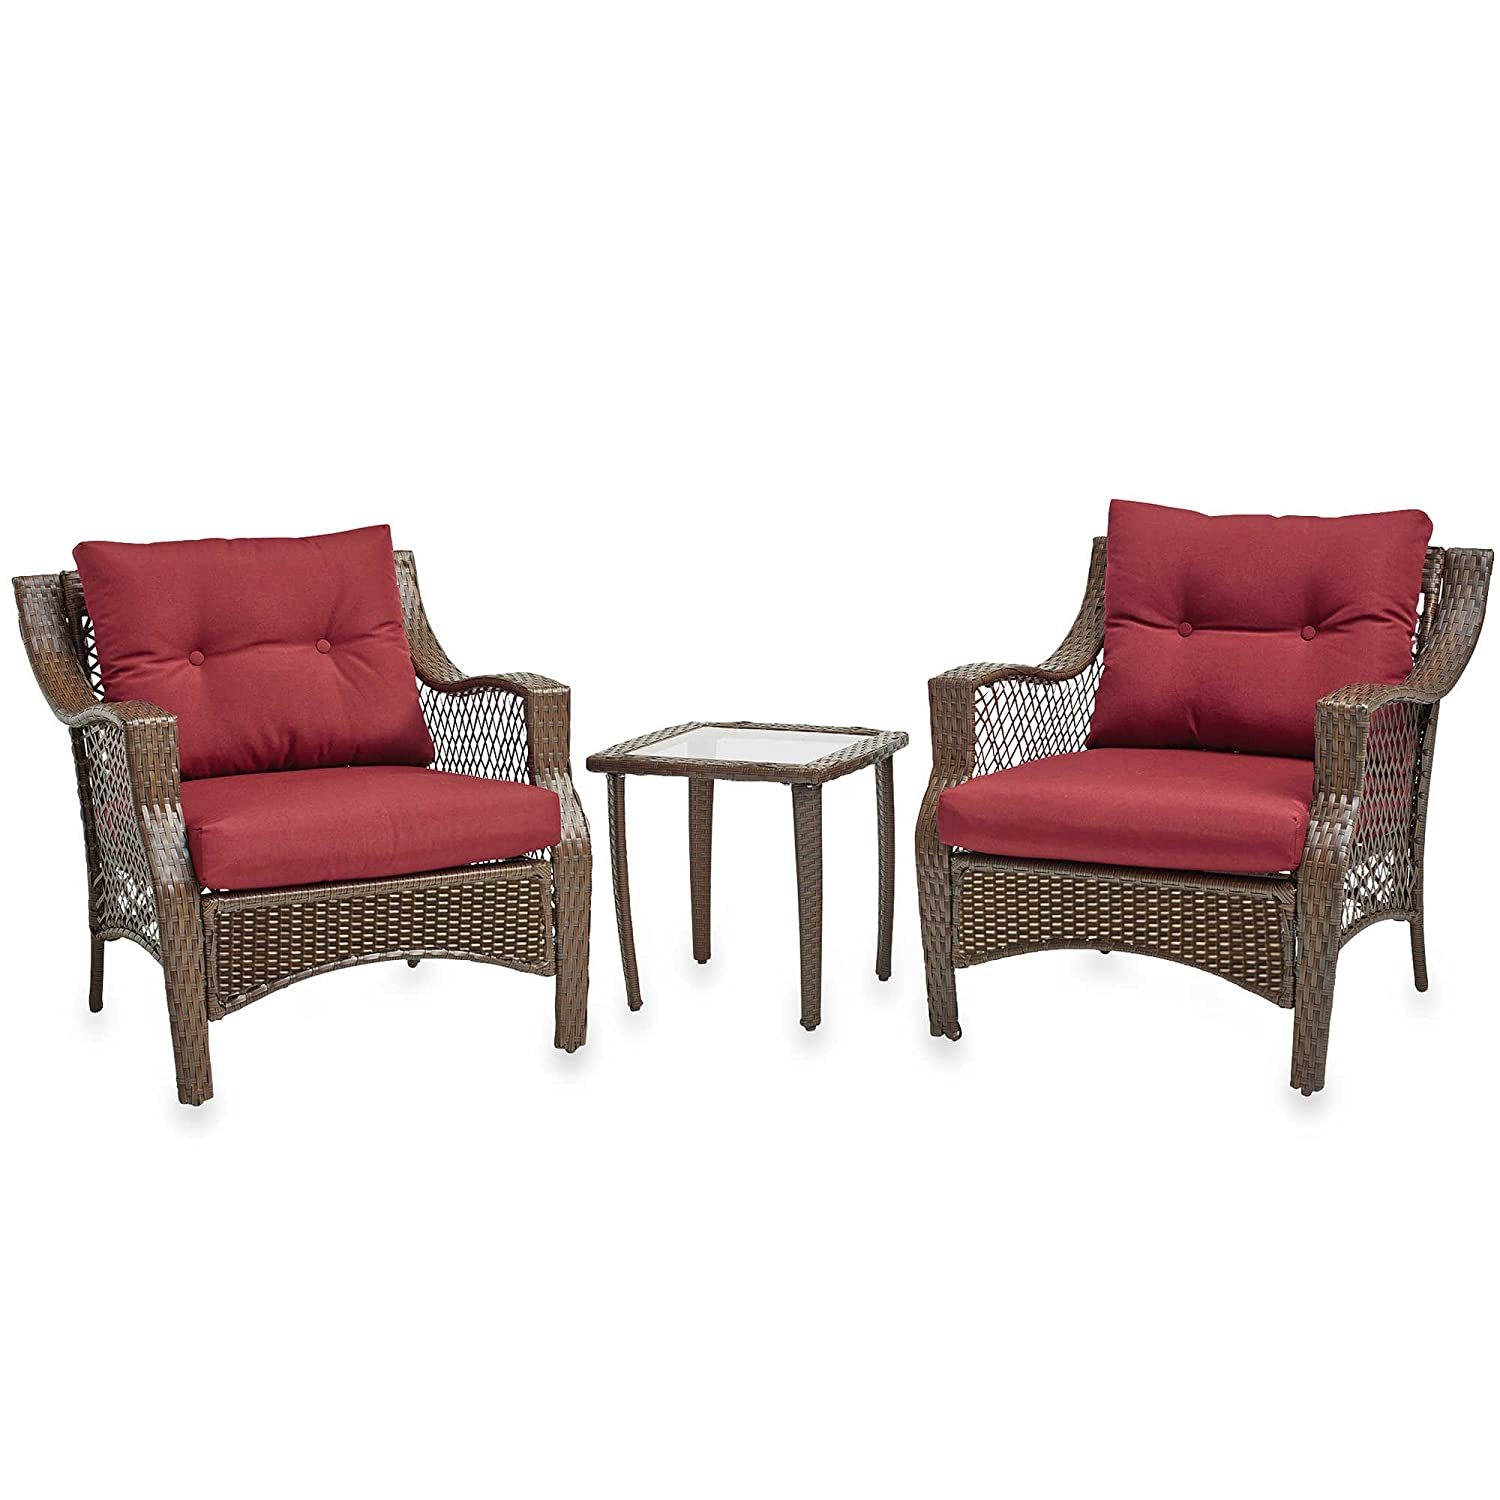 Amazon 3 Piece Outdoor Patio Wicker Furniture Set With Deep